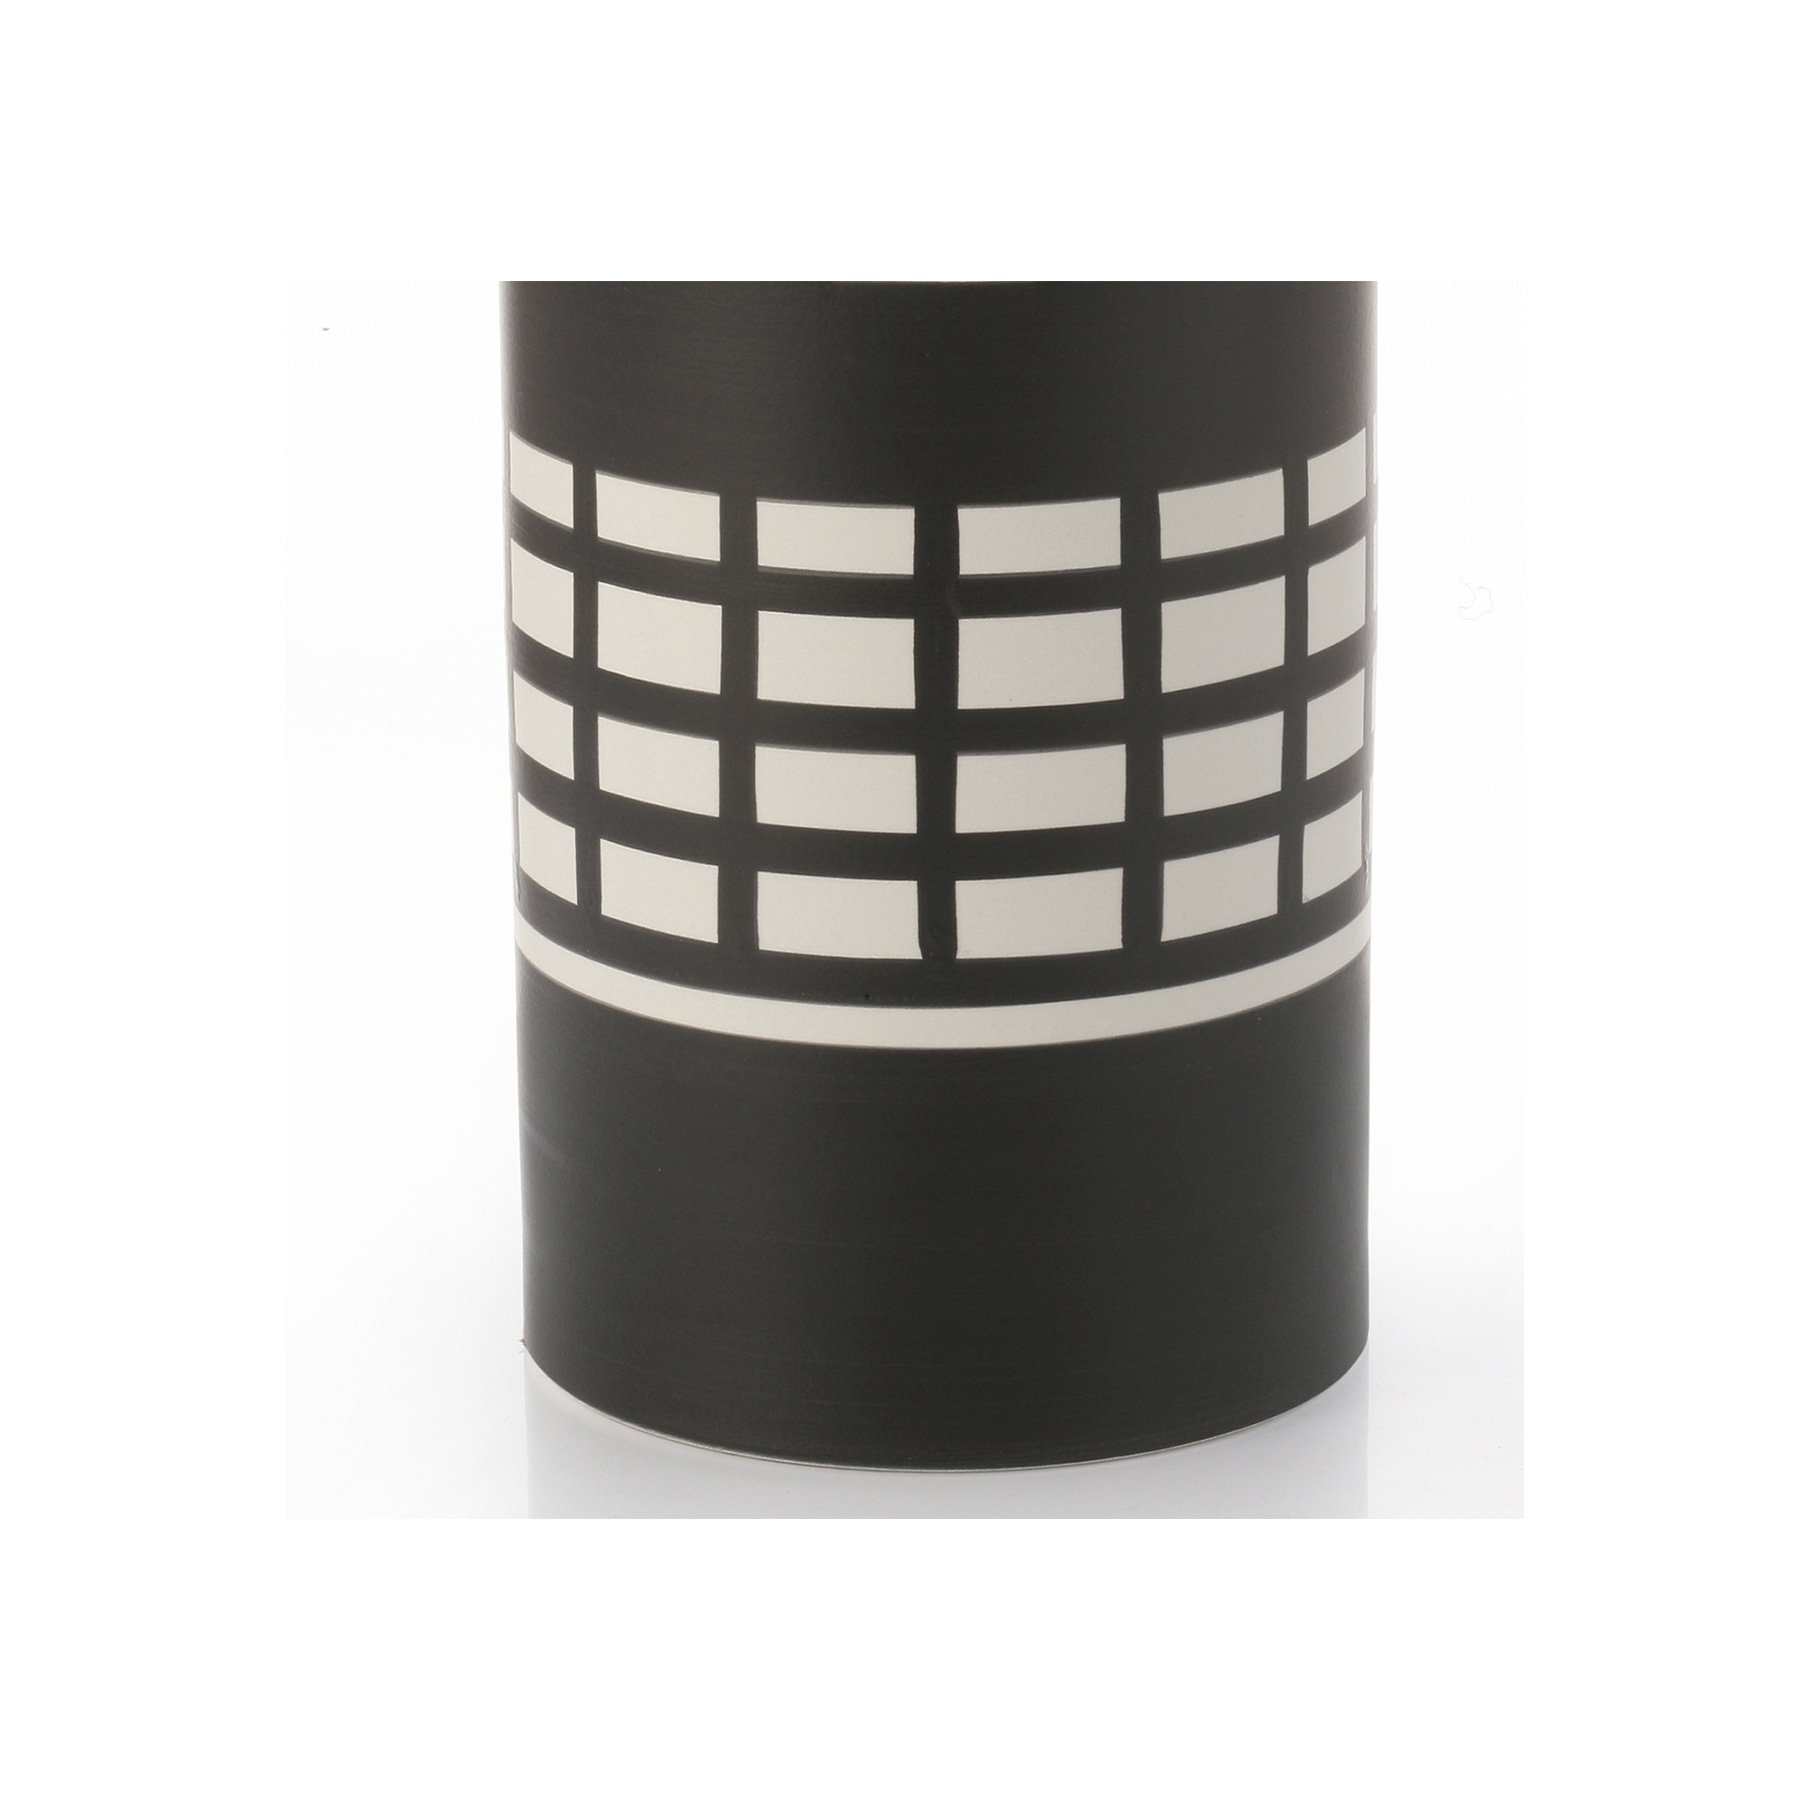 Vaso Rocchetto - Vase B&W series. Hand-turned in white clay. Two-tone matt black and white glaze. This vase's simple shape is complemented by its geometric decoration that features striking motifs in black on the white background of the cylindrical shape. This piece was designed by renowned architect Ettore Sottsass in 1962. | Matter of Stuff